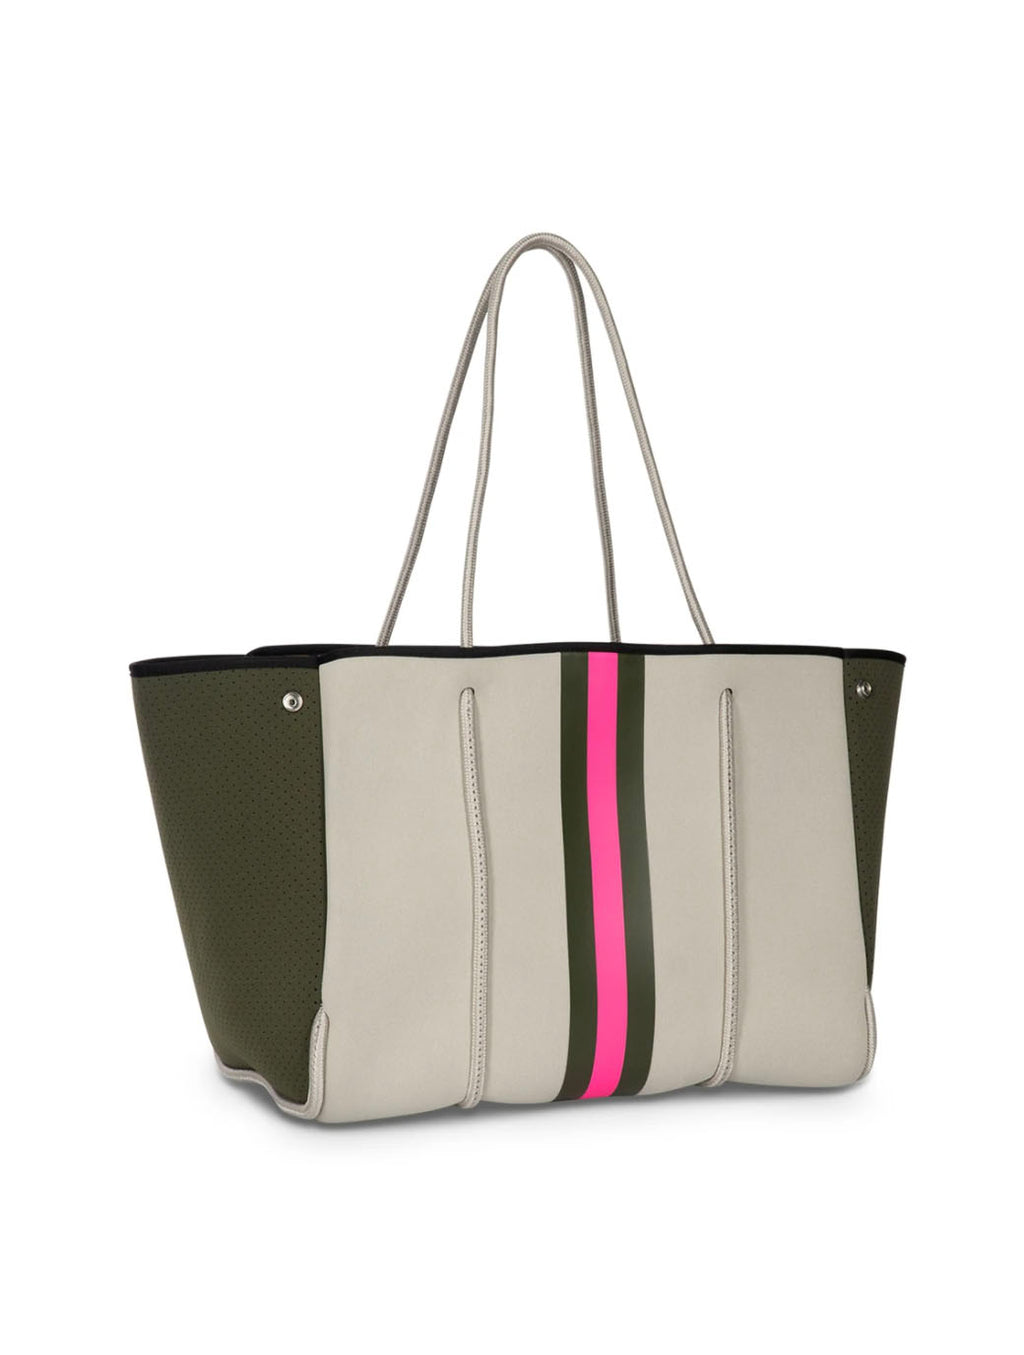 Haute Shore Greyson Swank in Putty with Green and Pink